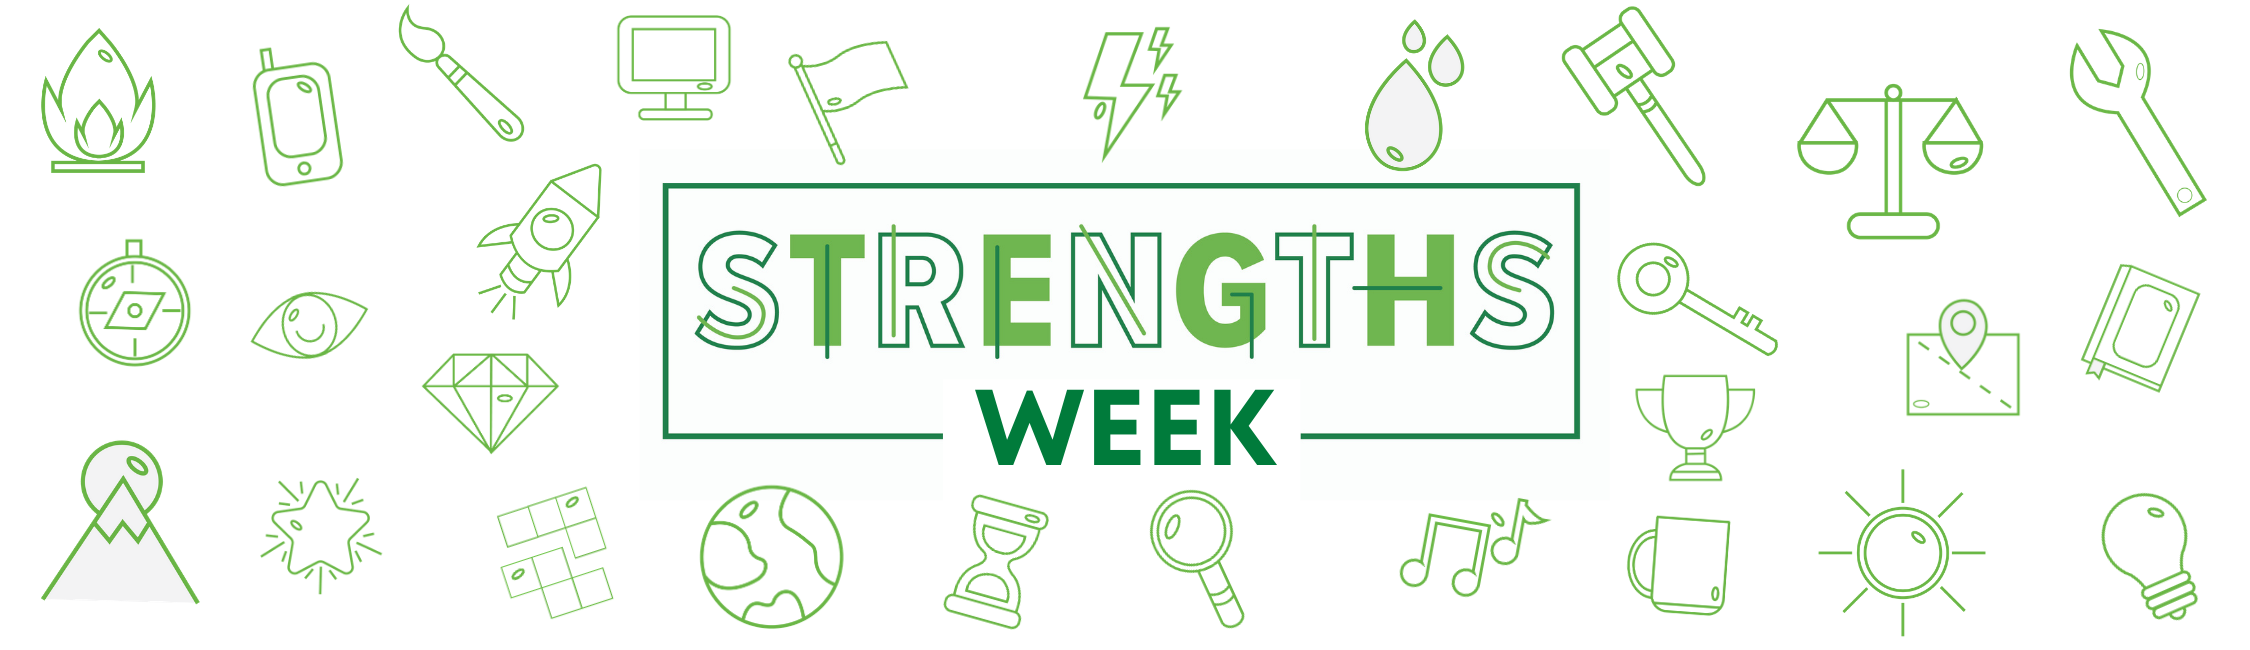 Strengths Week in green letters. Icons representing the various talent themes form a pattern in the background.